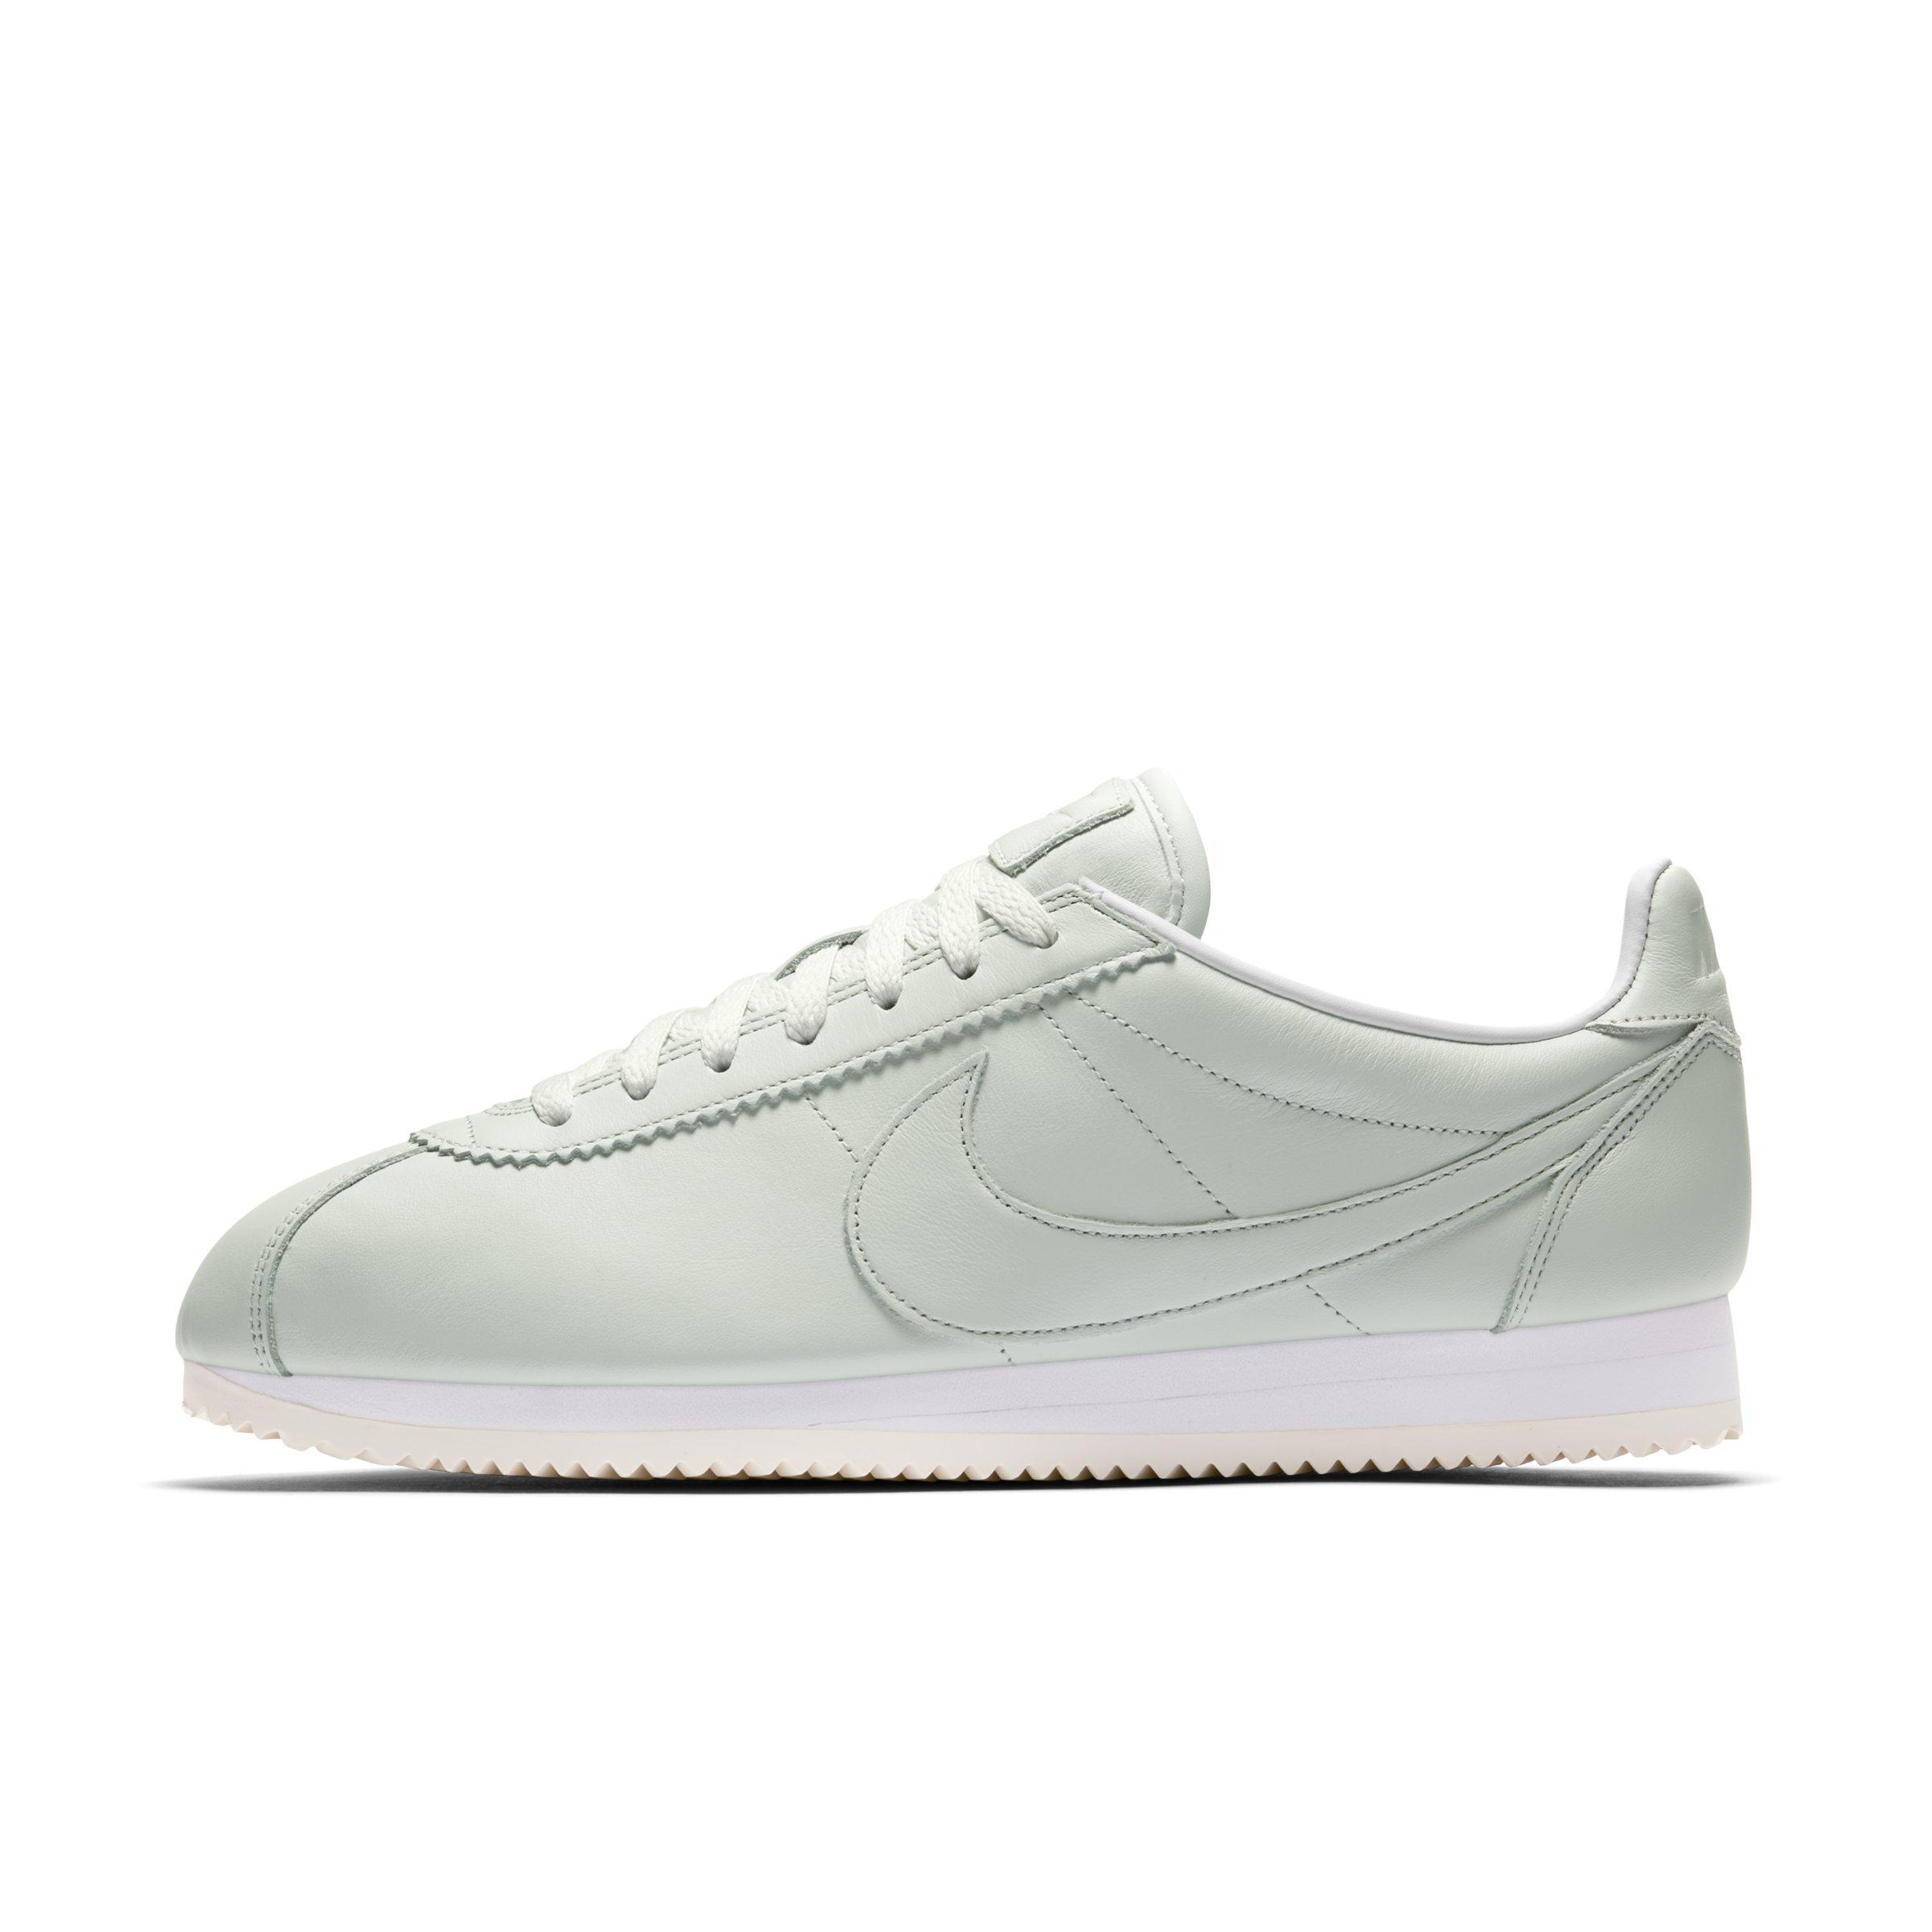 cheap for discount b0323 e0beb Nike Classic Cortez Premium Unisex Shoe in White for Men - Lyst